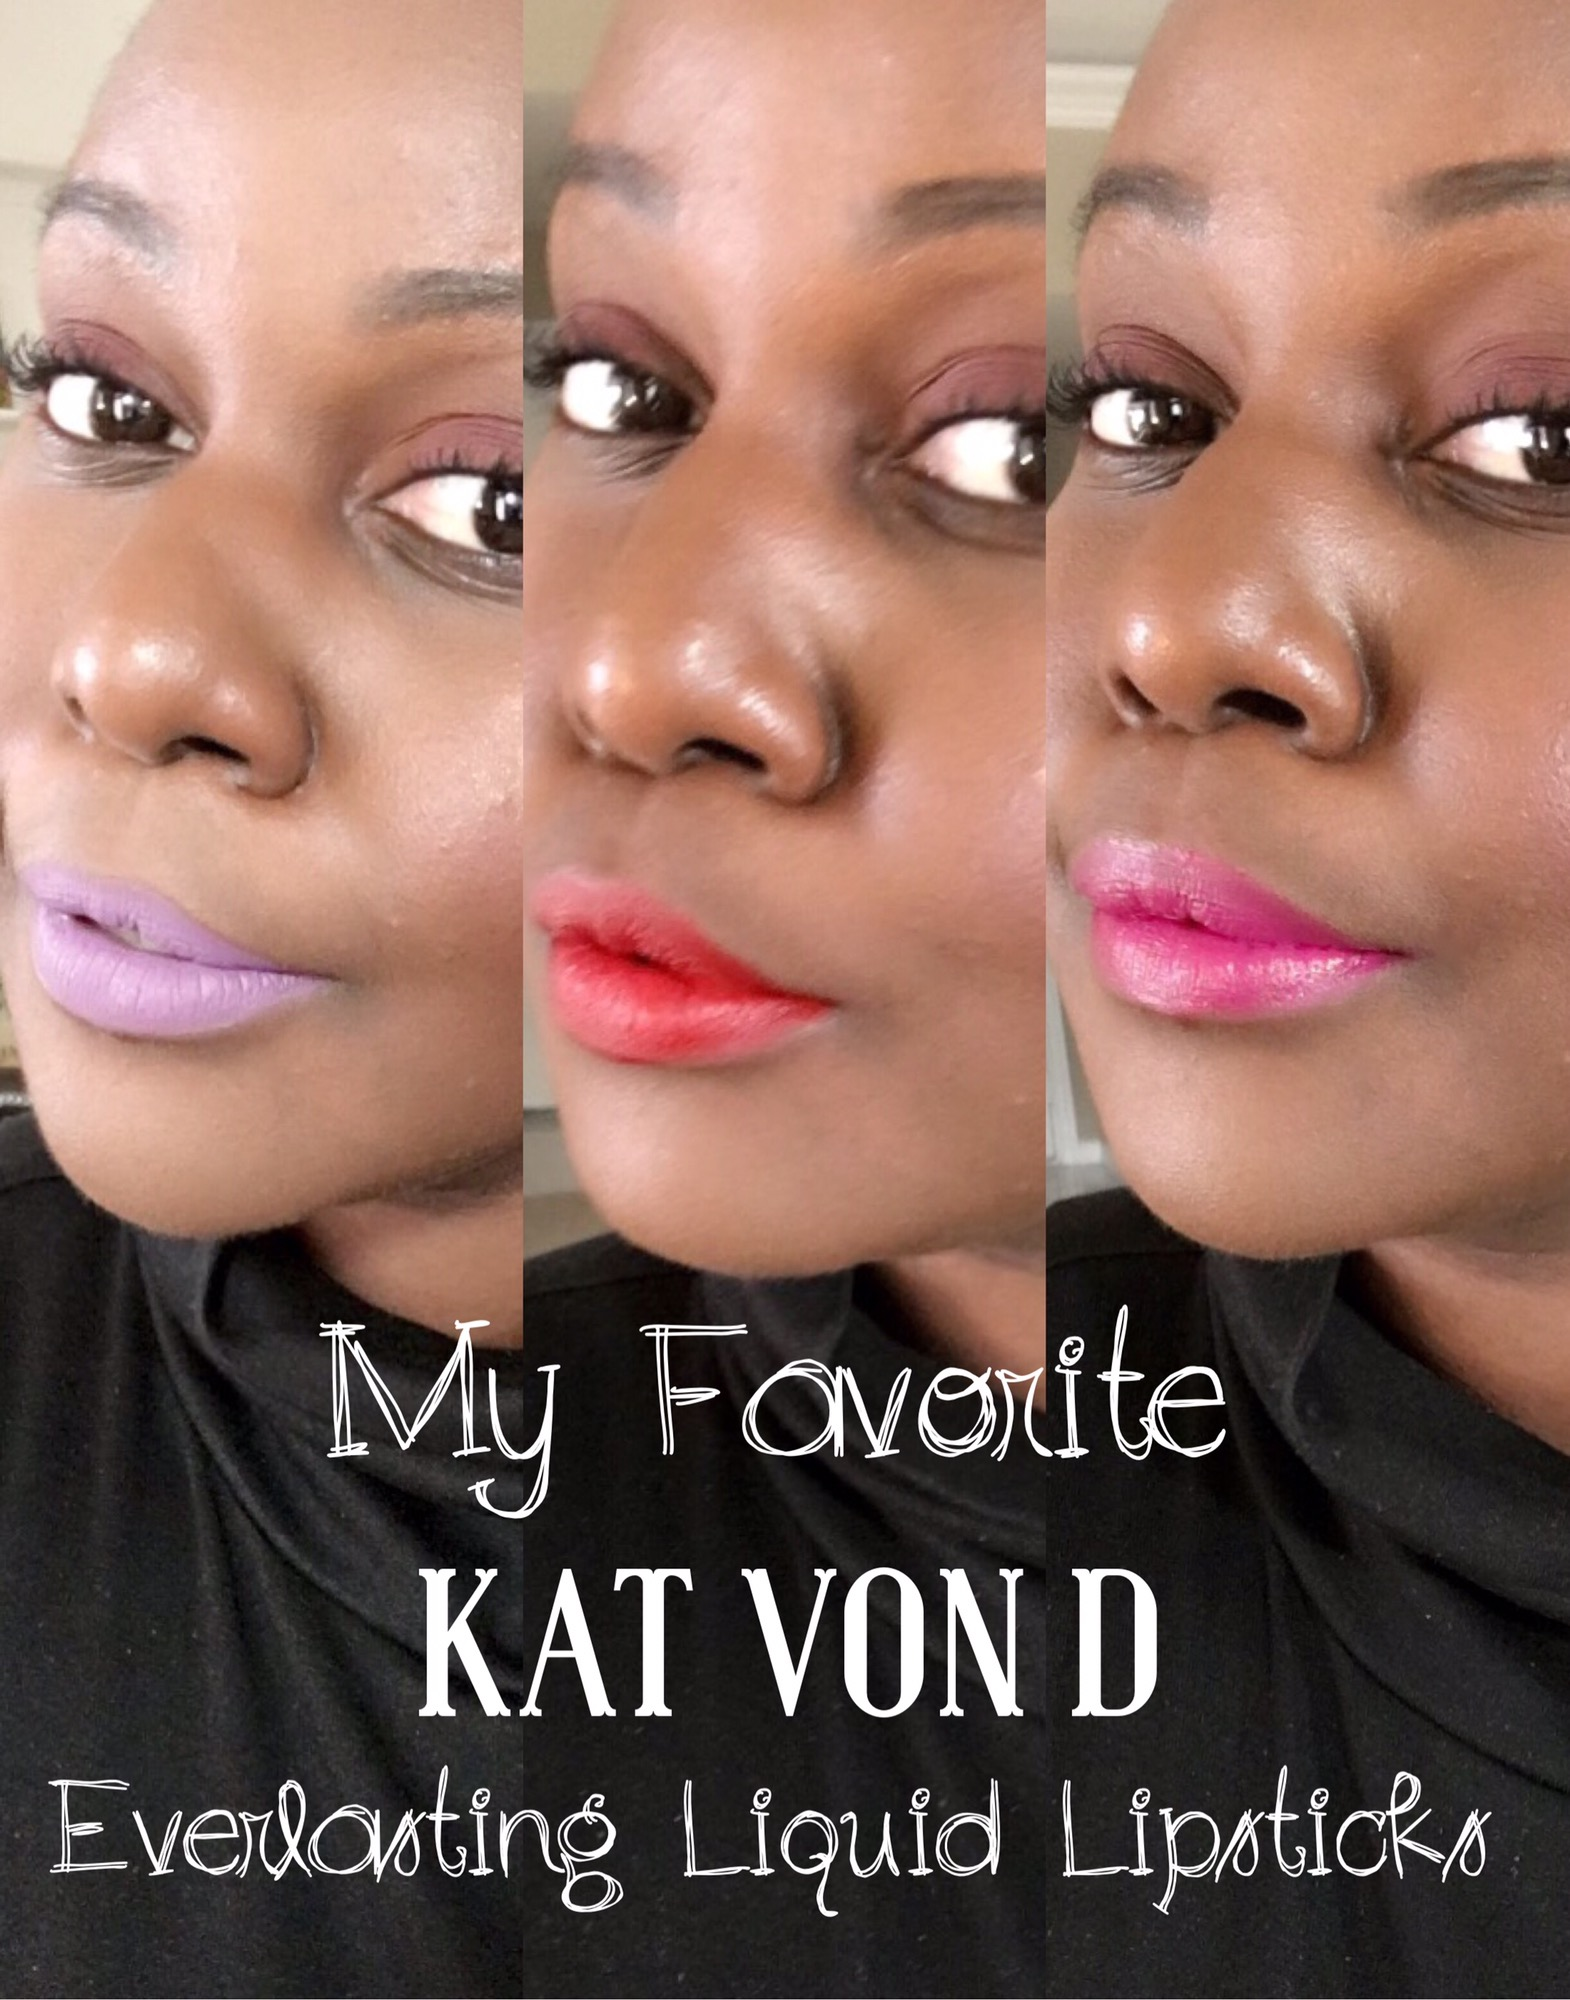 Kat Von D Everlasting Liquid Lipsticks Review on Dark Skin Black Women of color